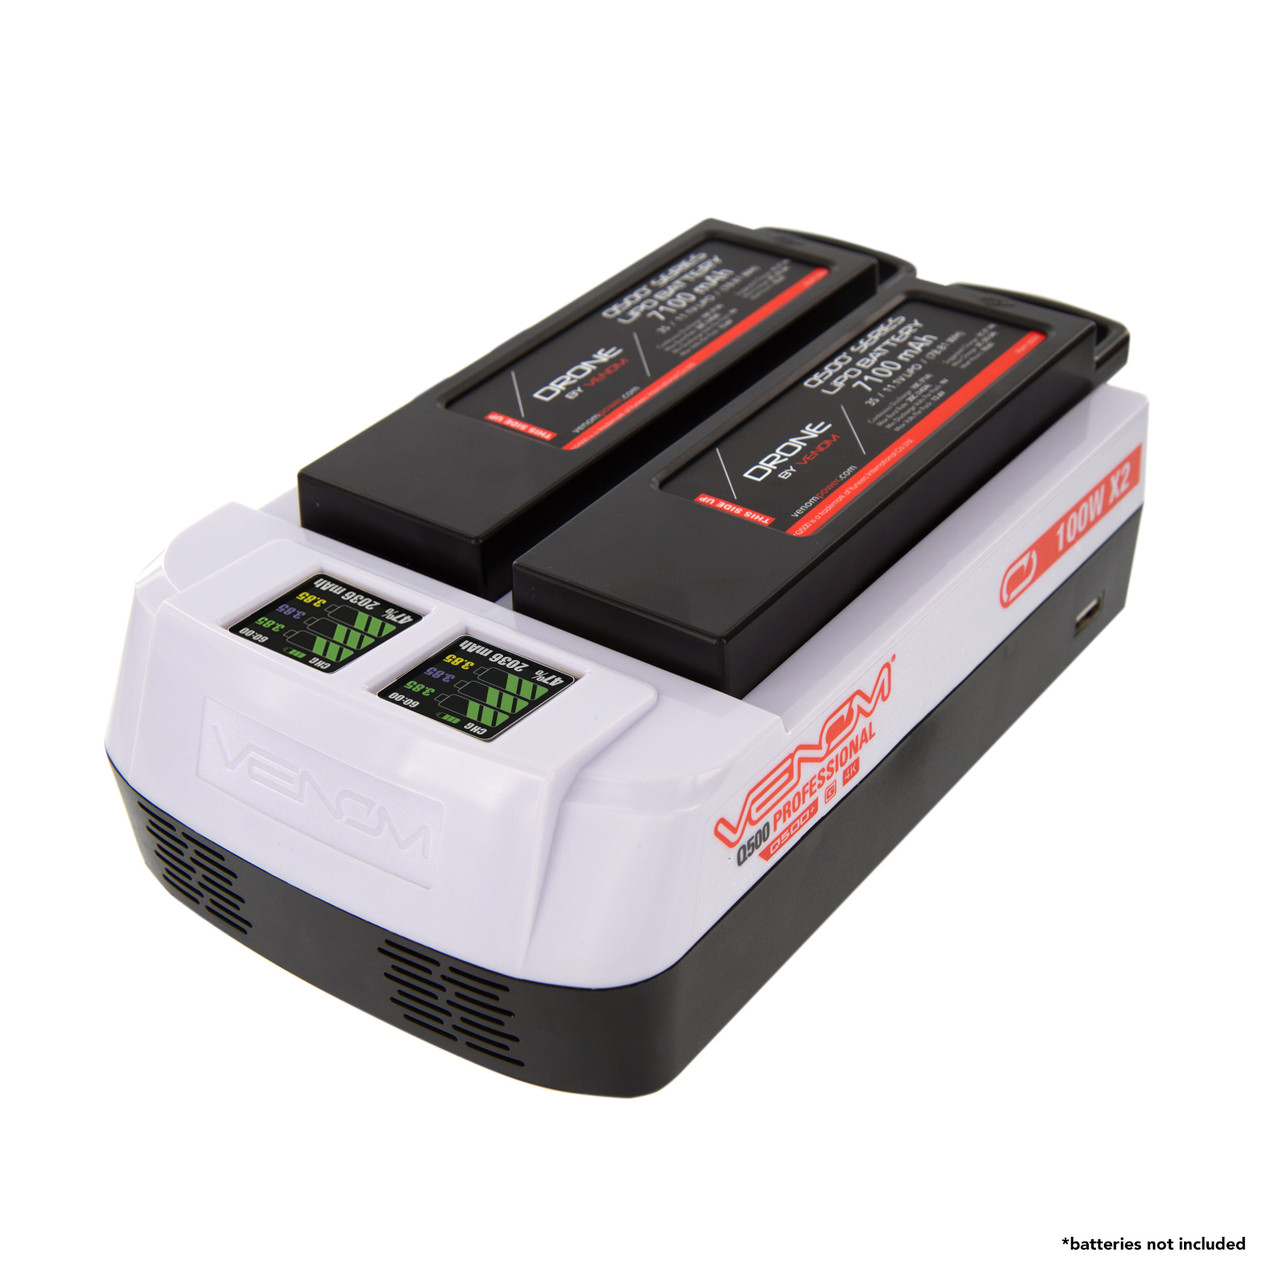 Yuneec Typhoon Q500 Power Station 6Amp Dual Output LiPo Battery Charger by Venom